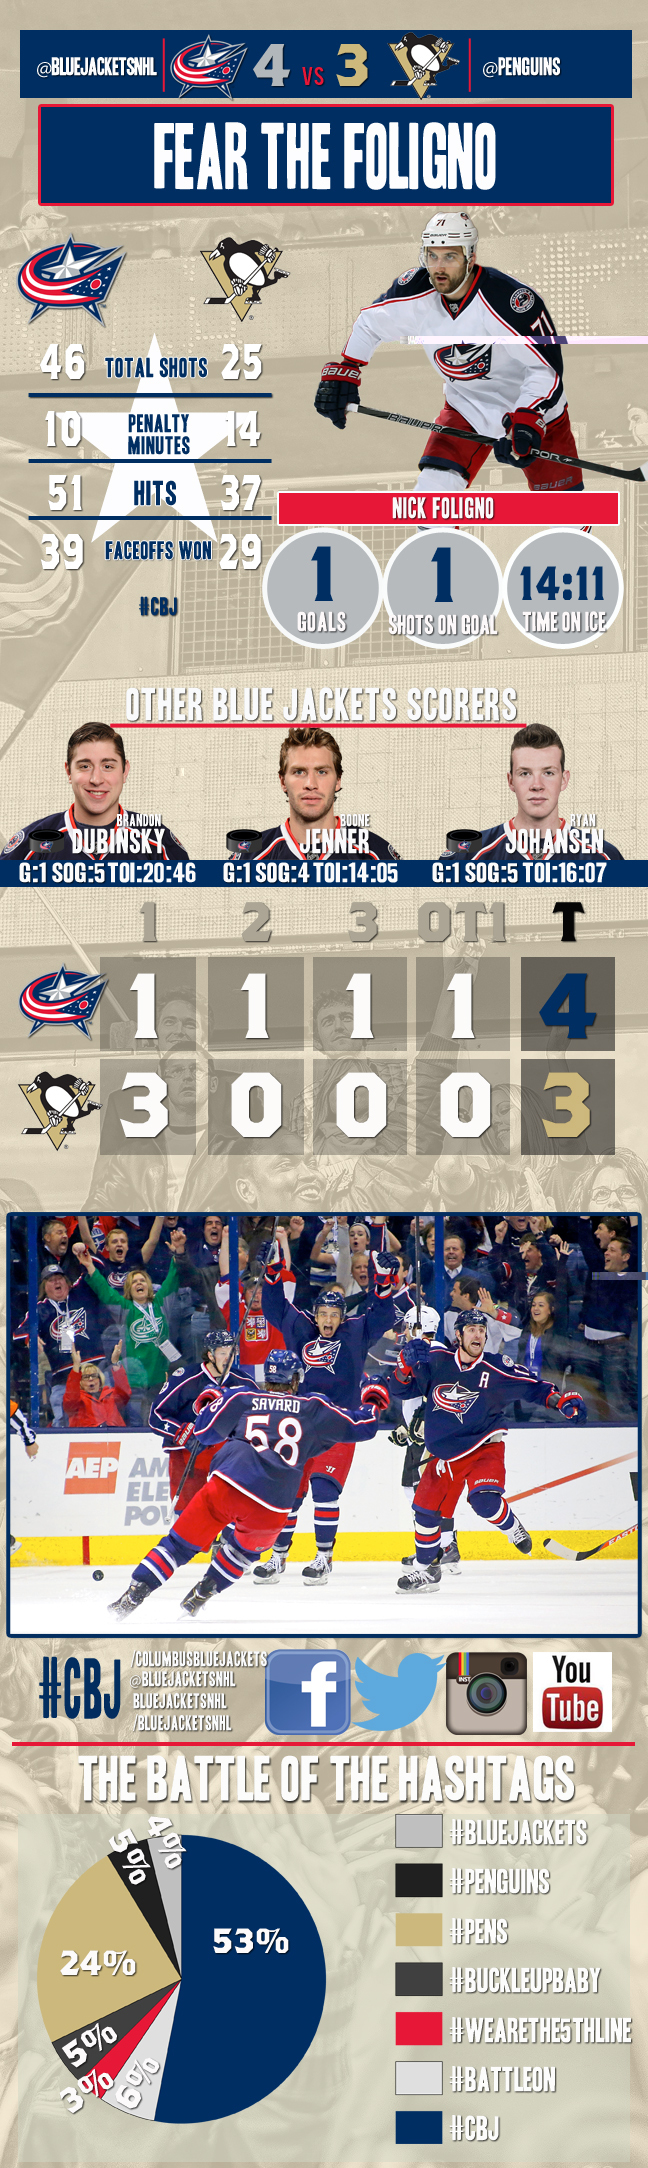 Jackets Penguins Infographic Game 4 Columbus Blue Jackets Blue Jacket Go Blue